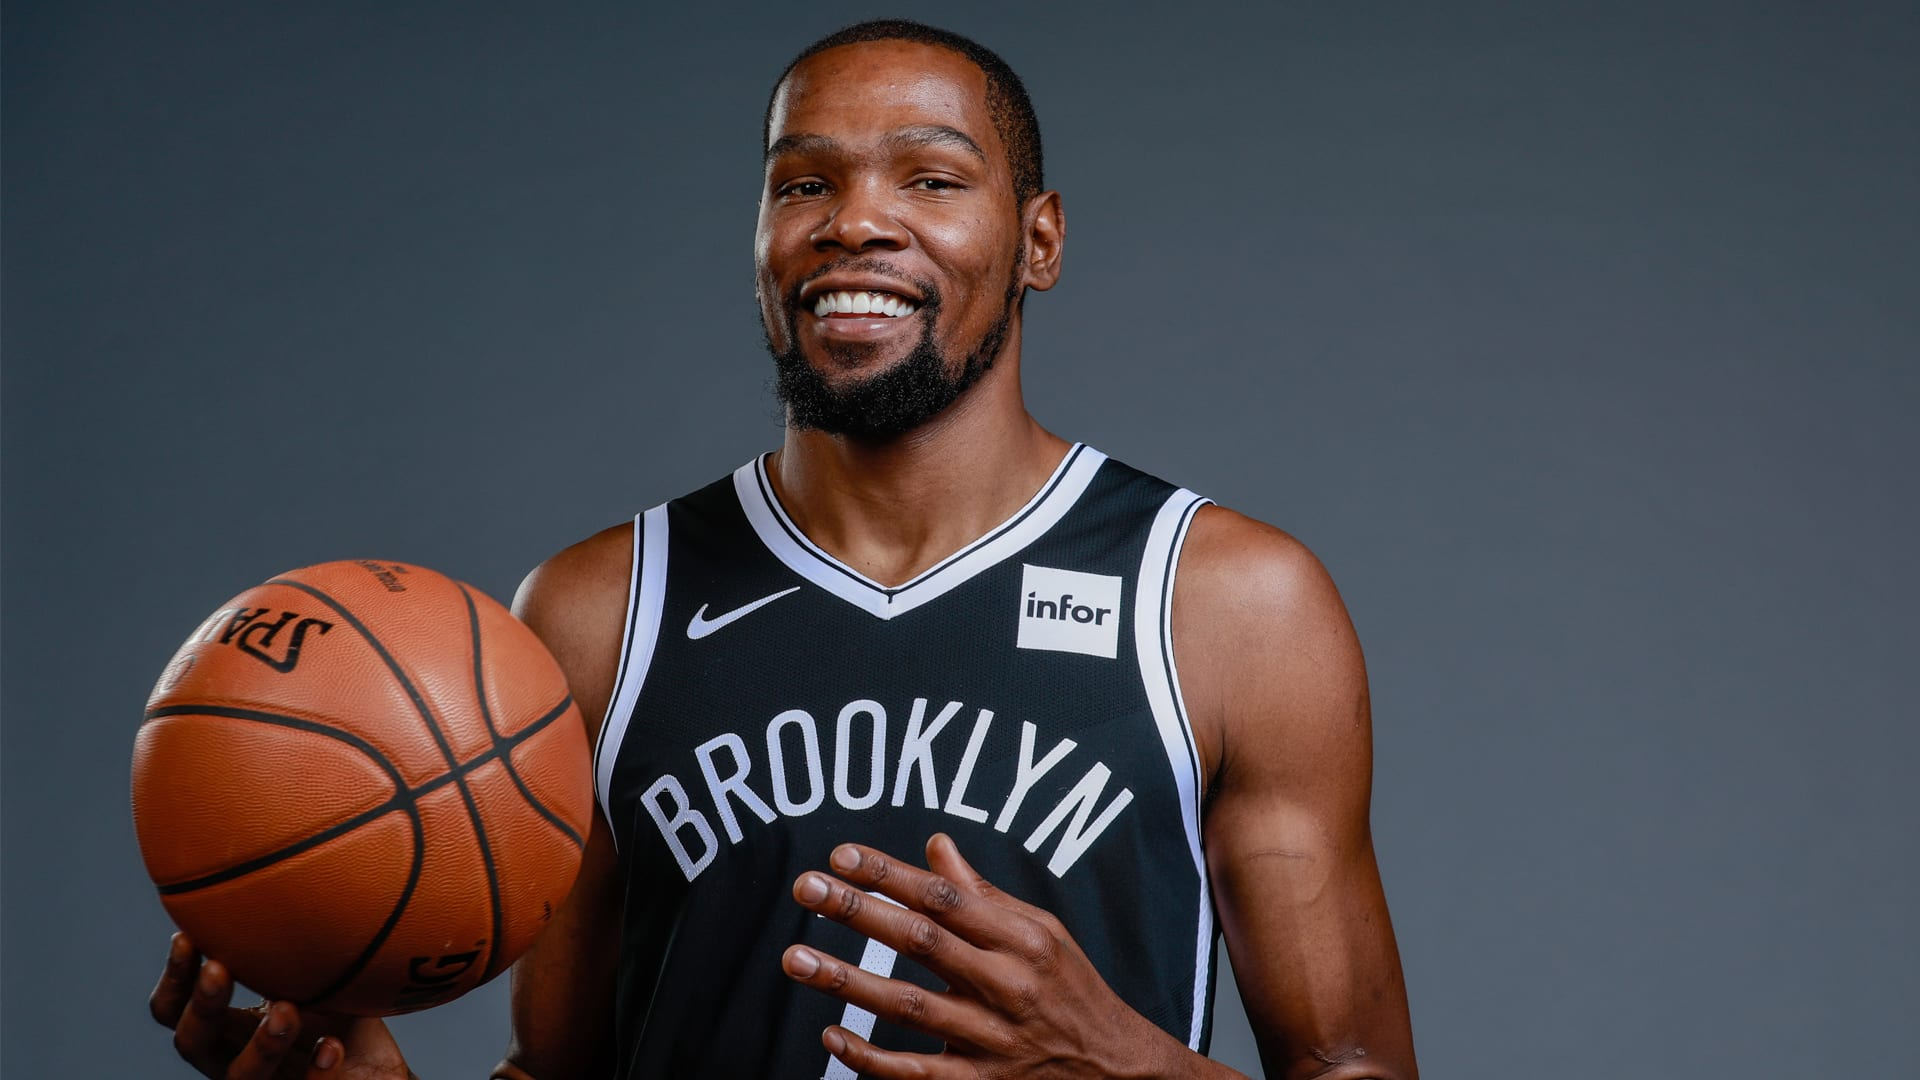 Kevin Durant Wallpaper - KoLPaPer - Awesome Free HD Wallpapers